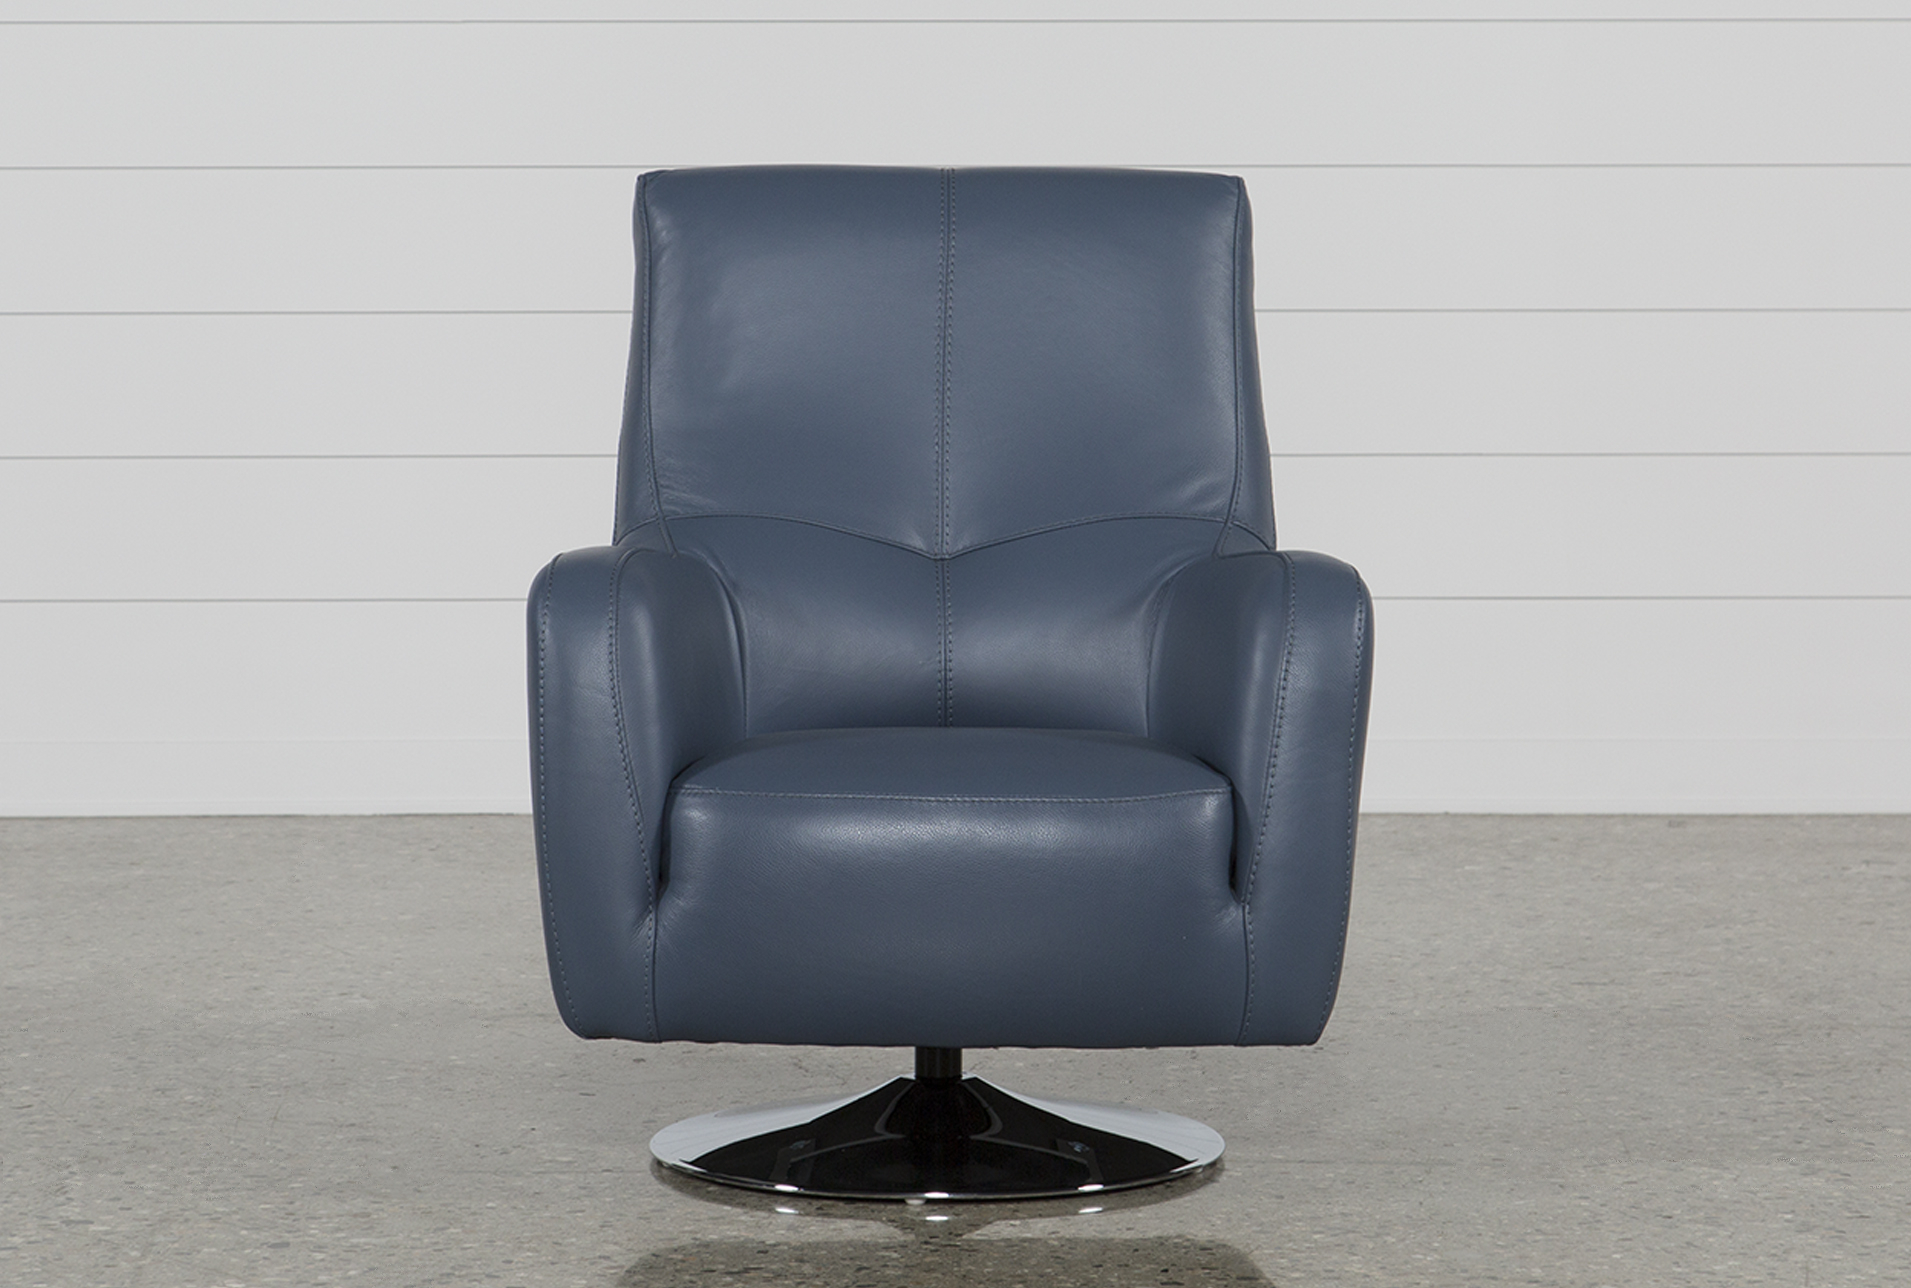 Kawai Leather Swivel Chair | Products | Pinterest | Leather Swivel In Amala Bone Leather Reclining Swivel Chairs (View 6 of 25)